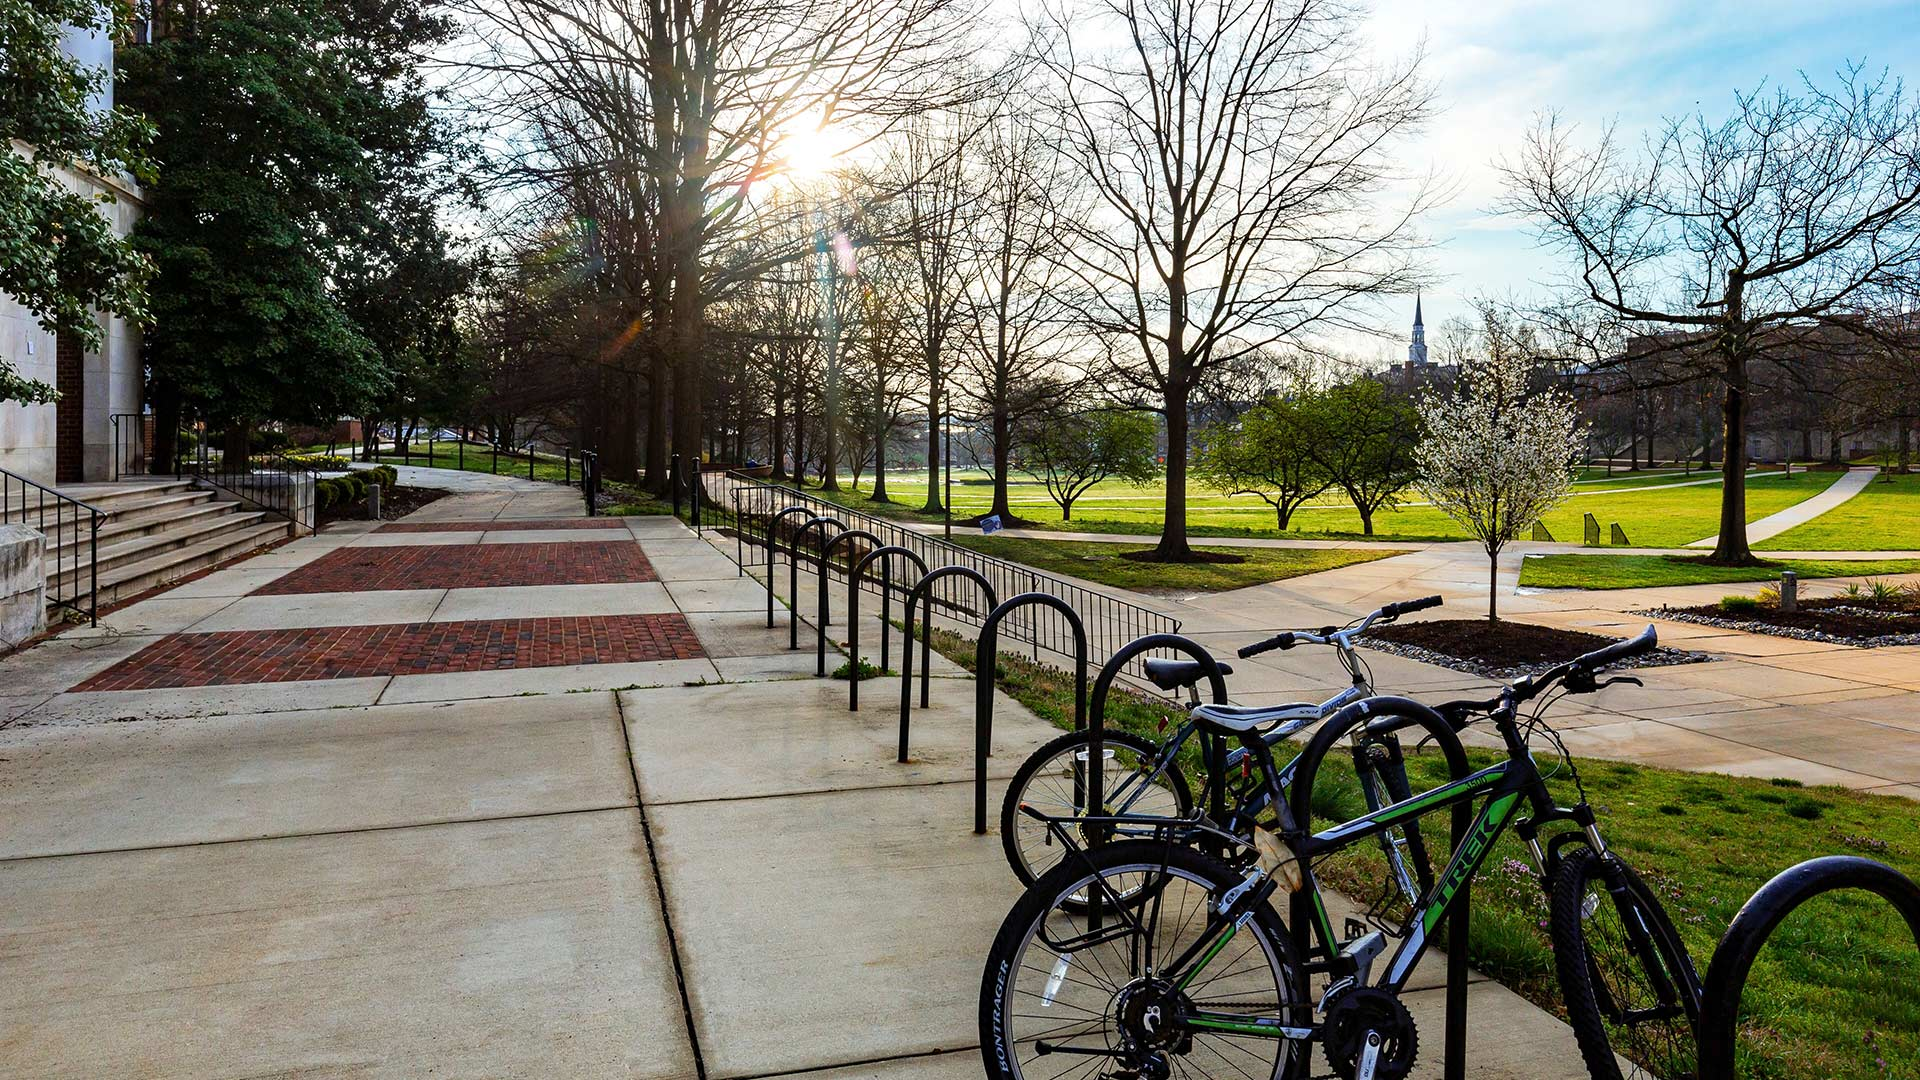 View of a near-empty bike rack outside of Jimenez Hall at sunrise overlooking the Mall, with lens flare.